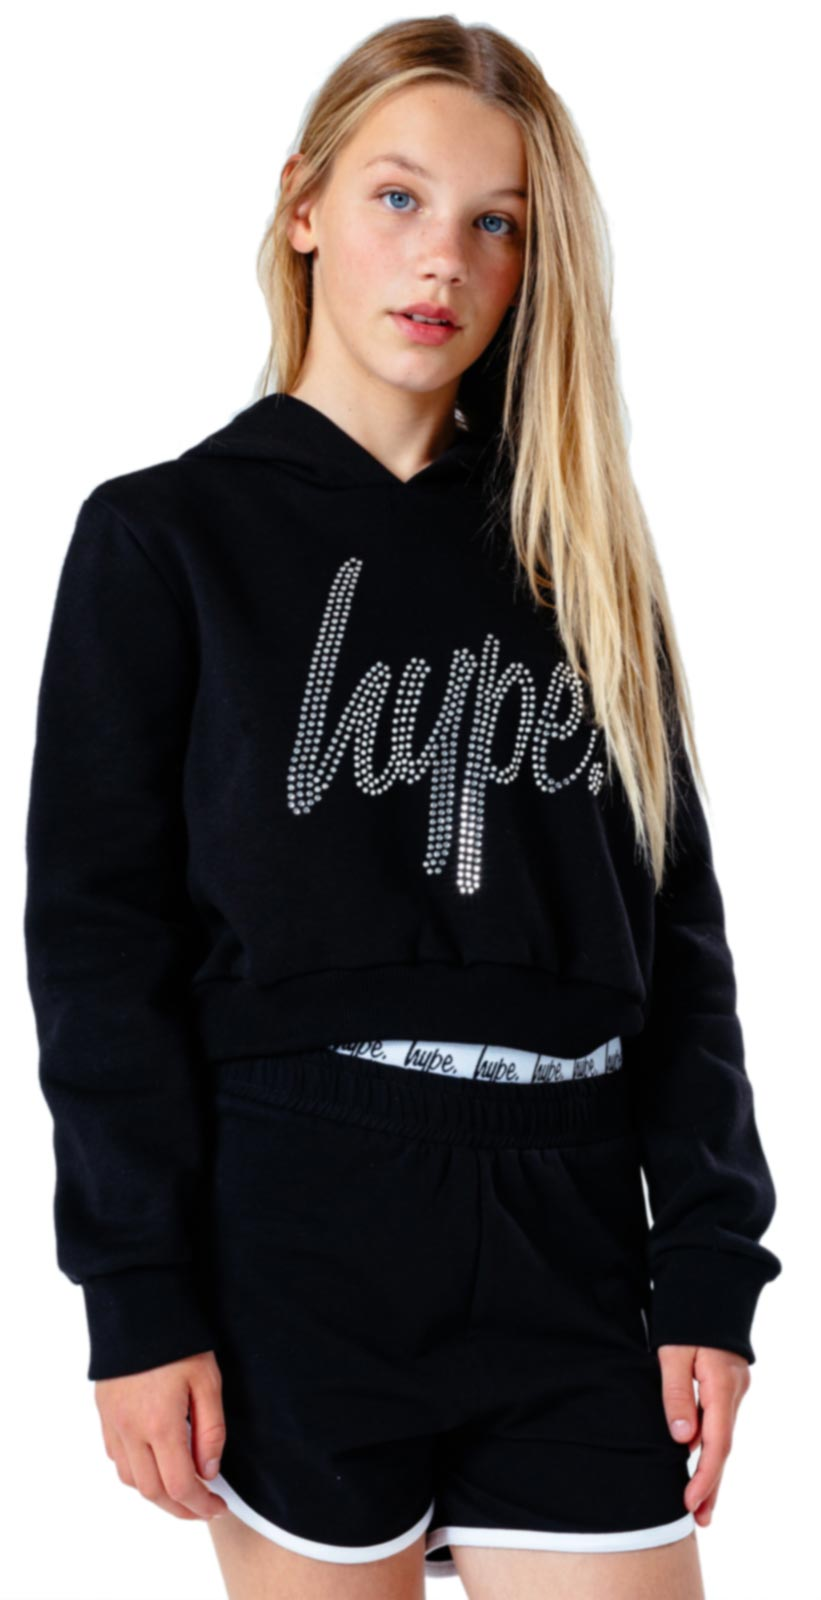 Hype Kids Diamante Script Crop Hoodie Black